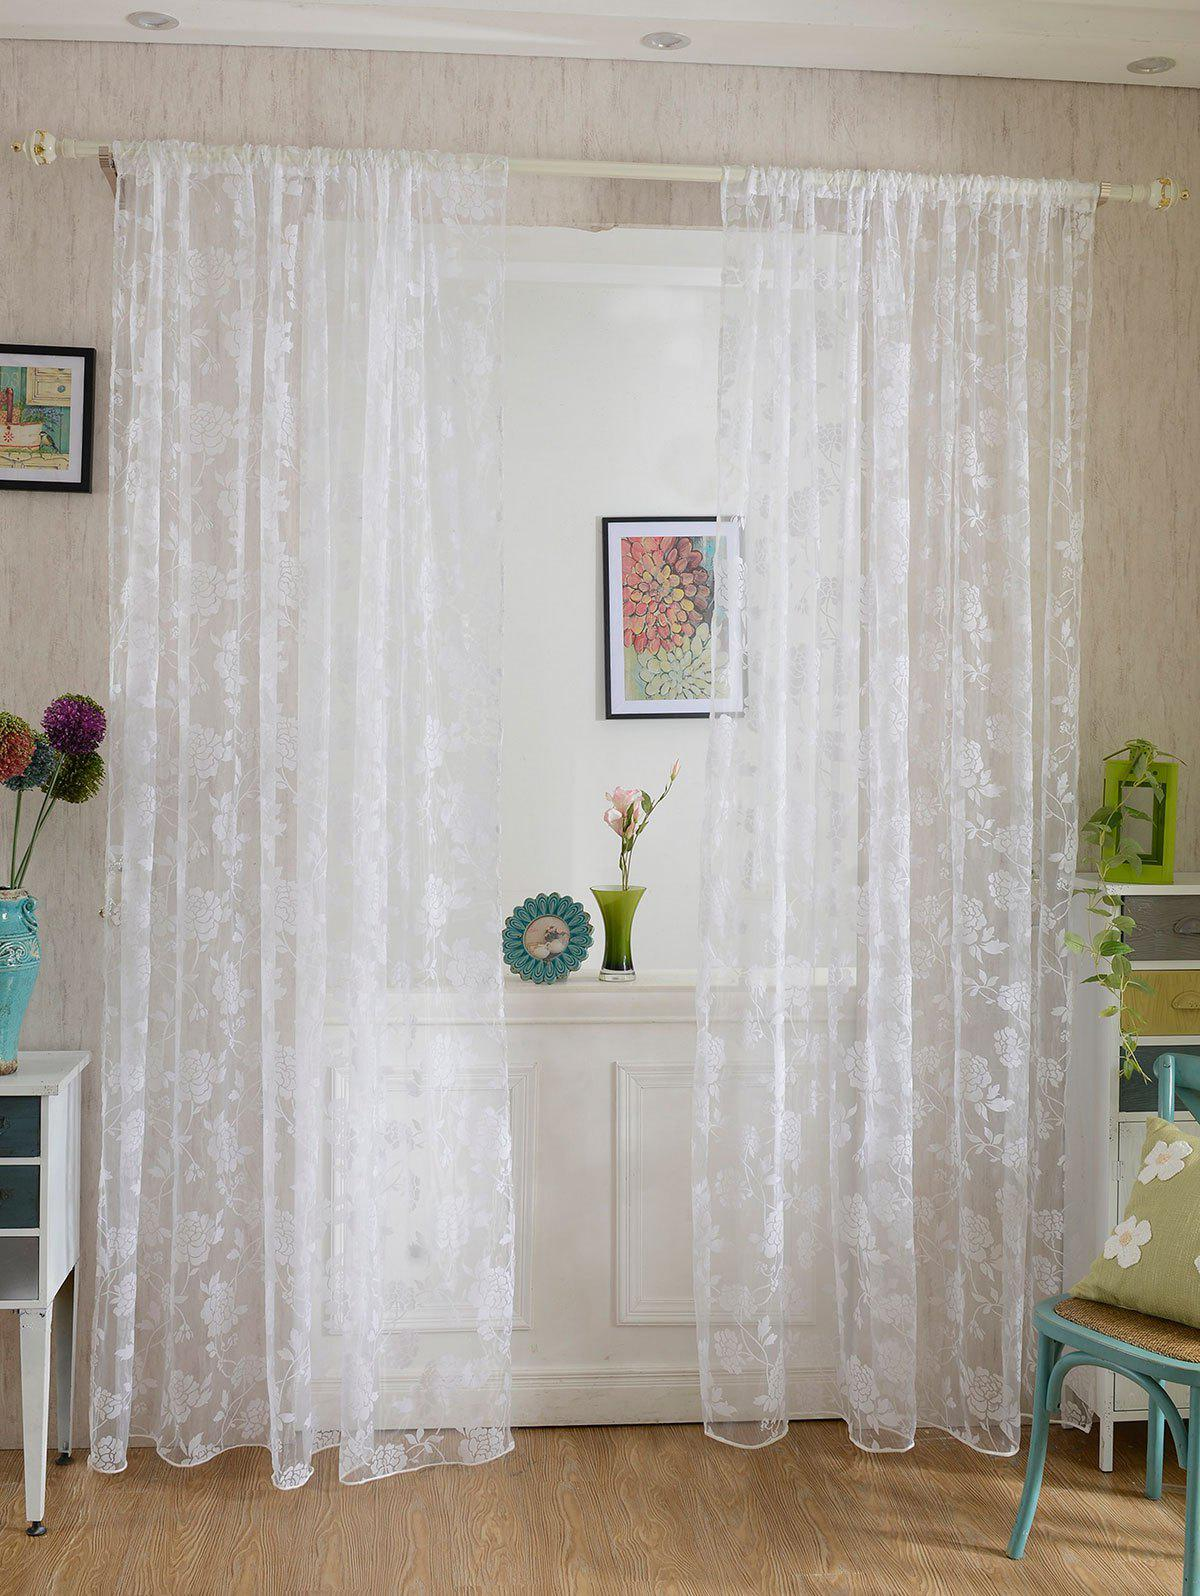 2 Panels Rose Embroidery Window Sheer Tulle Fabric Curtain - WHITE 100*200CM (2PCS/SET)